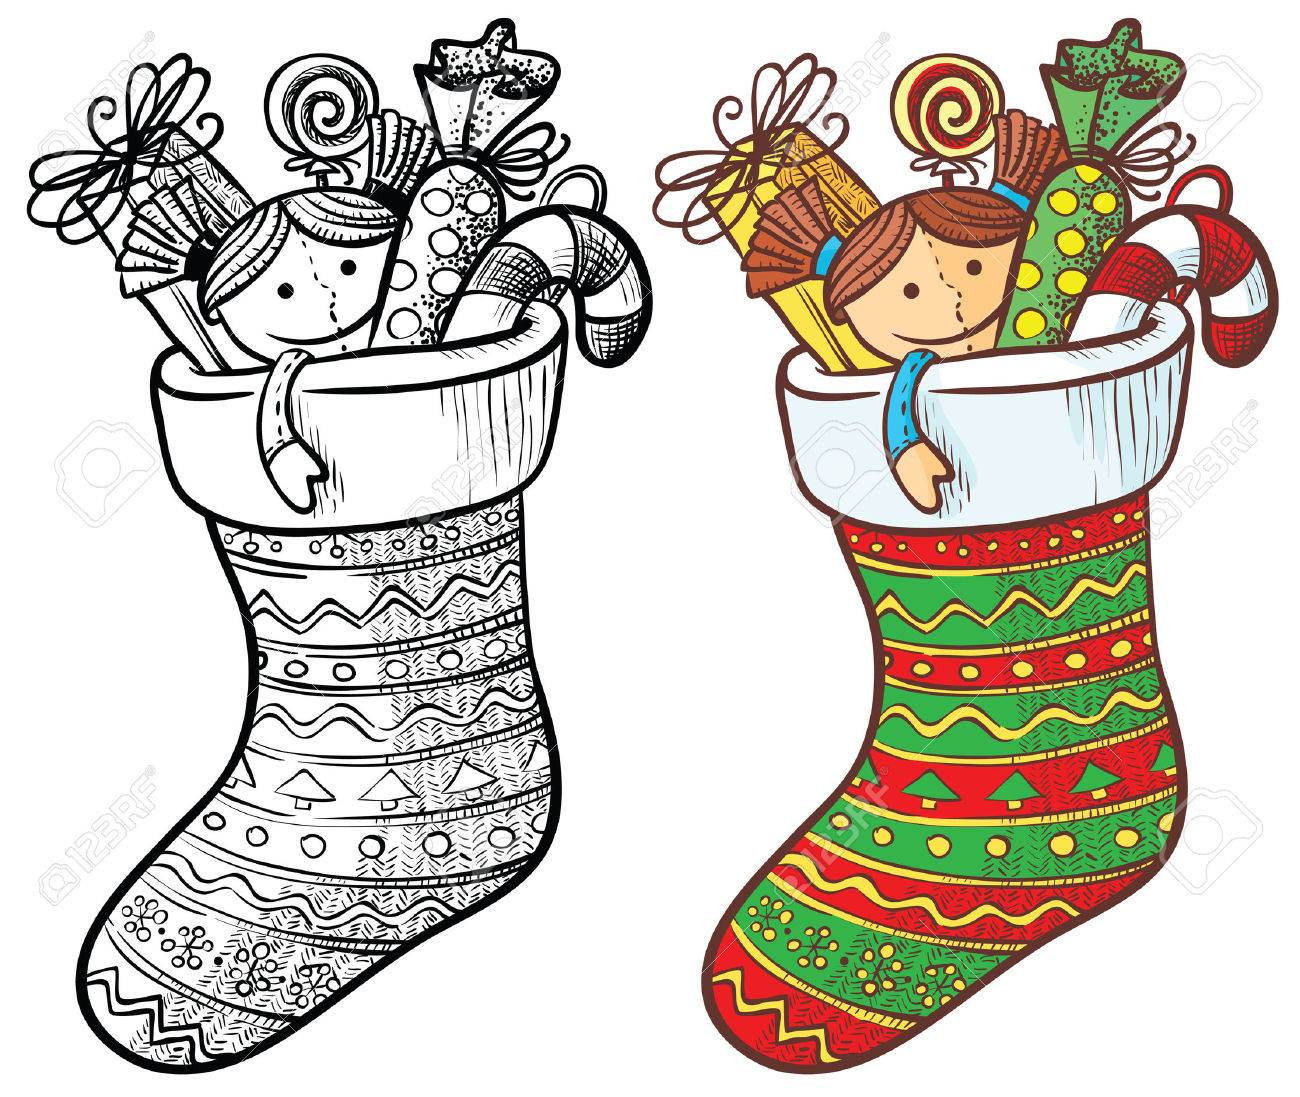 - Christmas Stocking With Gifts, Color And Doodle Version Royalty